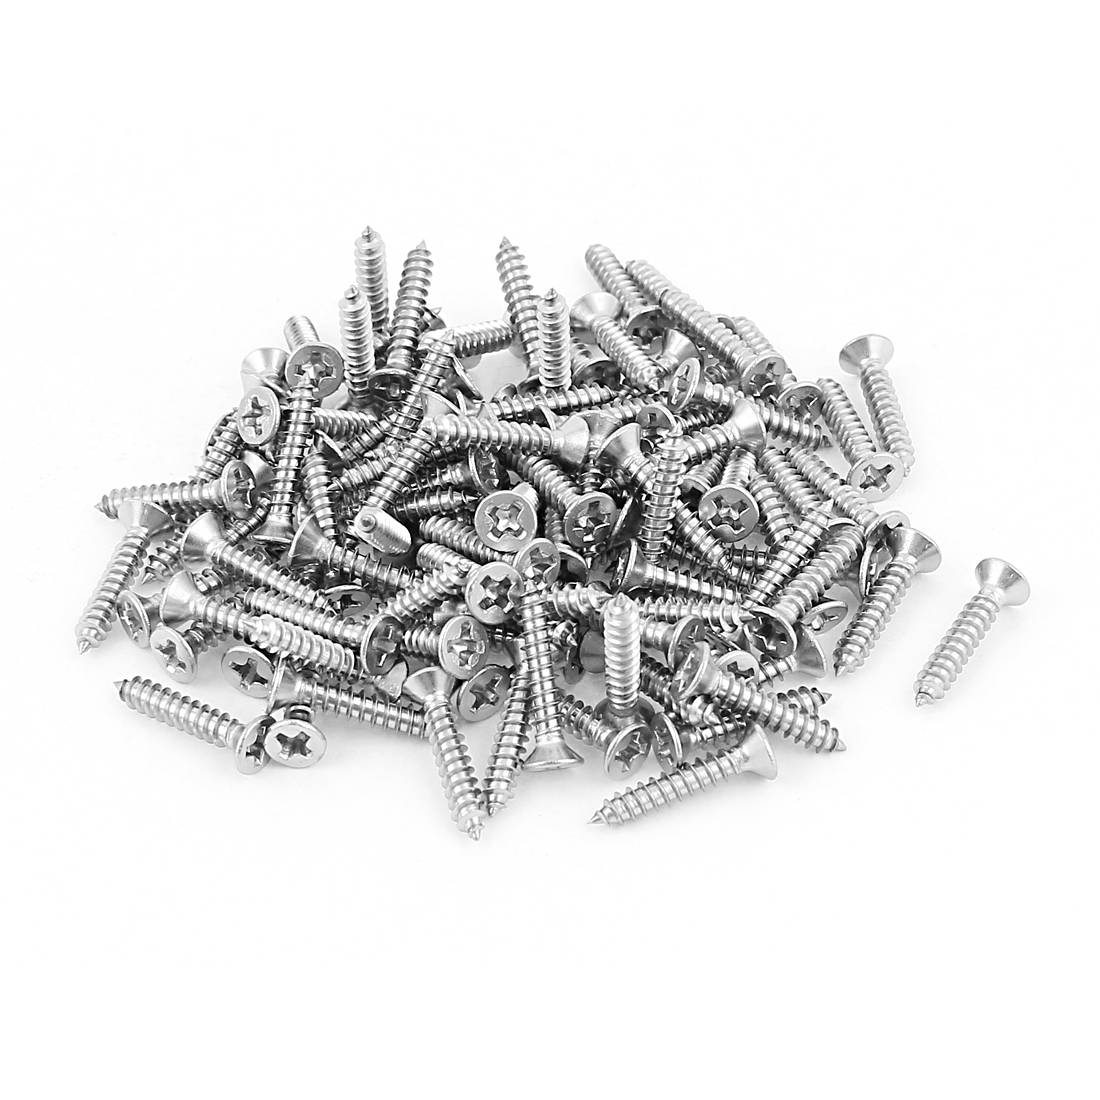 M3x16mm Phillips Flat Head Stainless Steel Self Tapping Screws Fastener 100Pcs